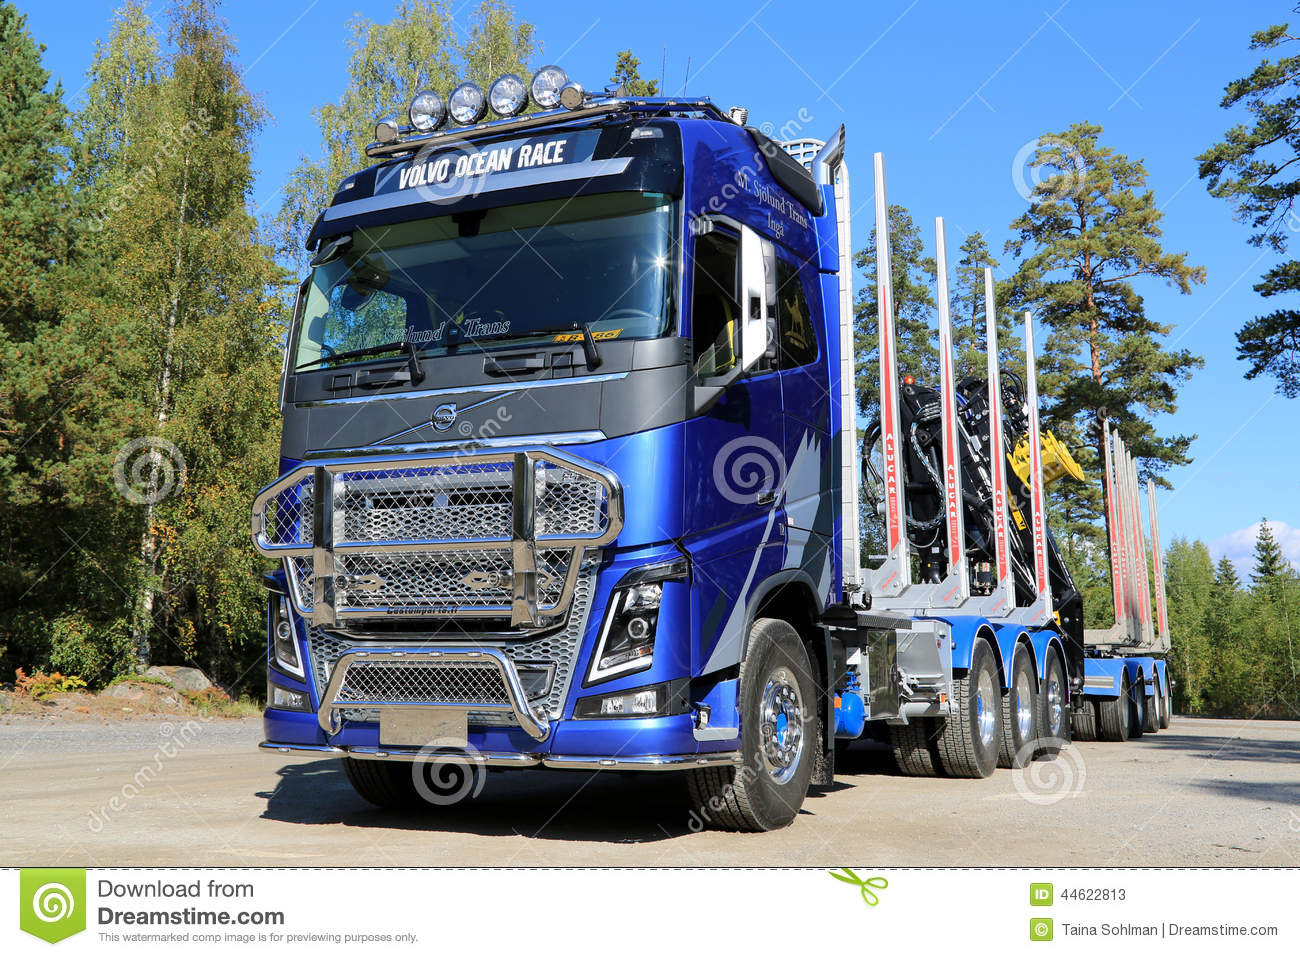 Camion d édition de FH16 Volvo Ocean Race Limited pour le transport de bois de construction